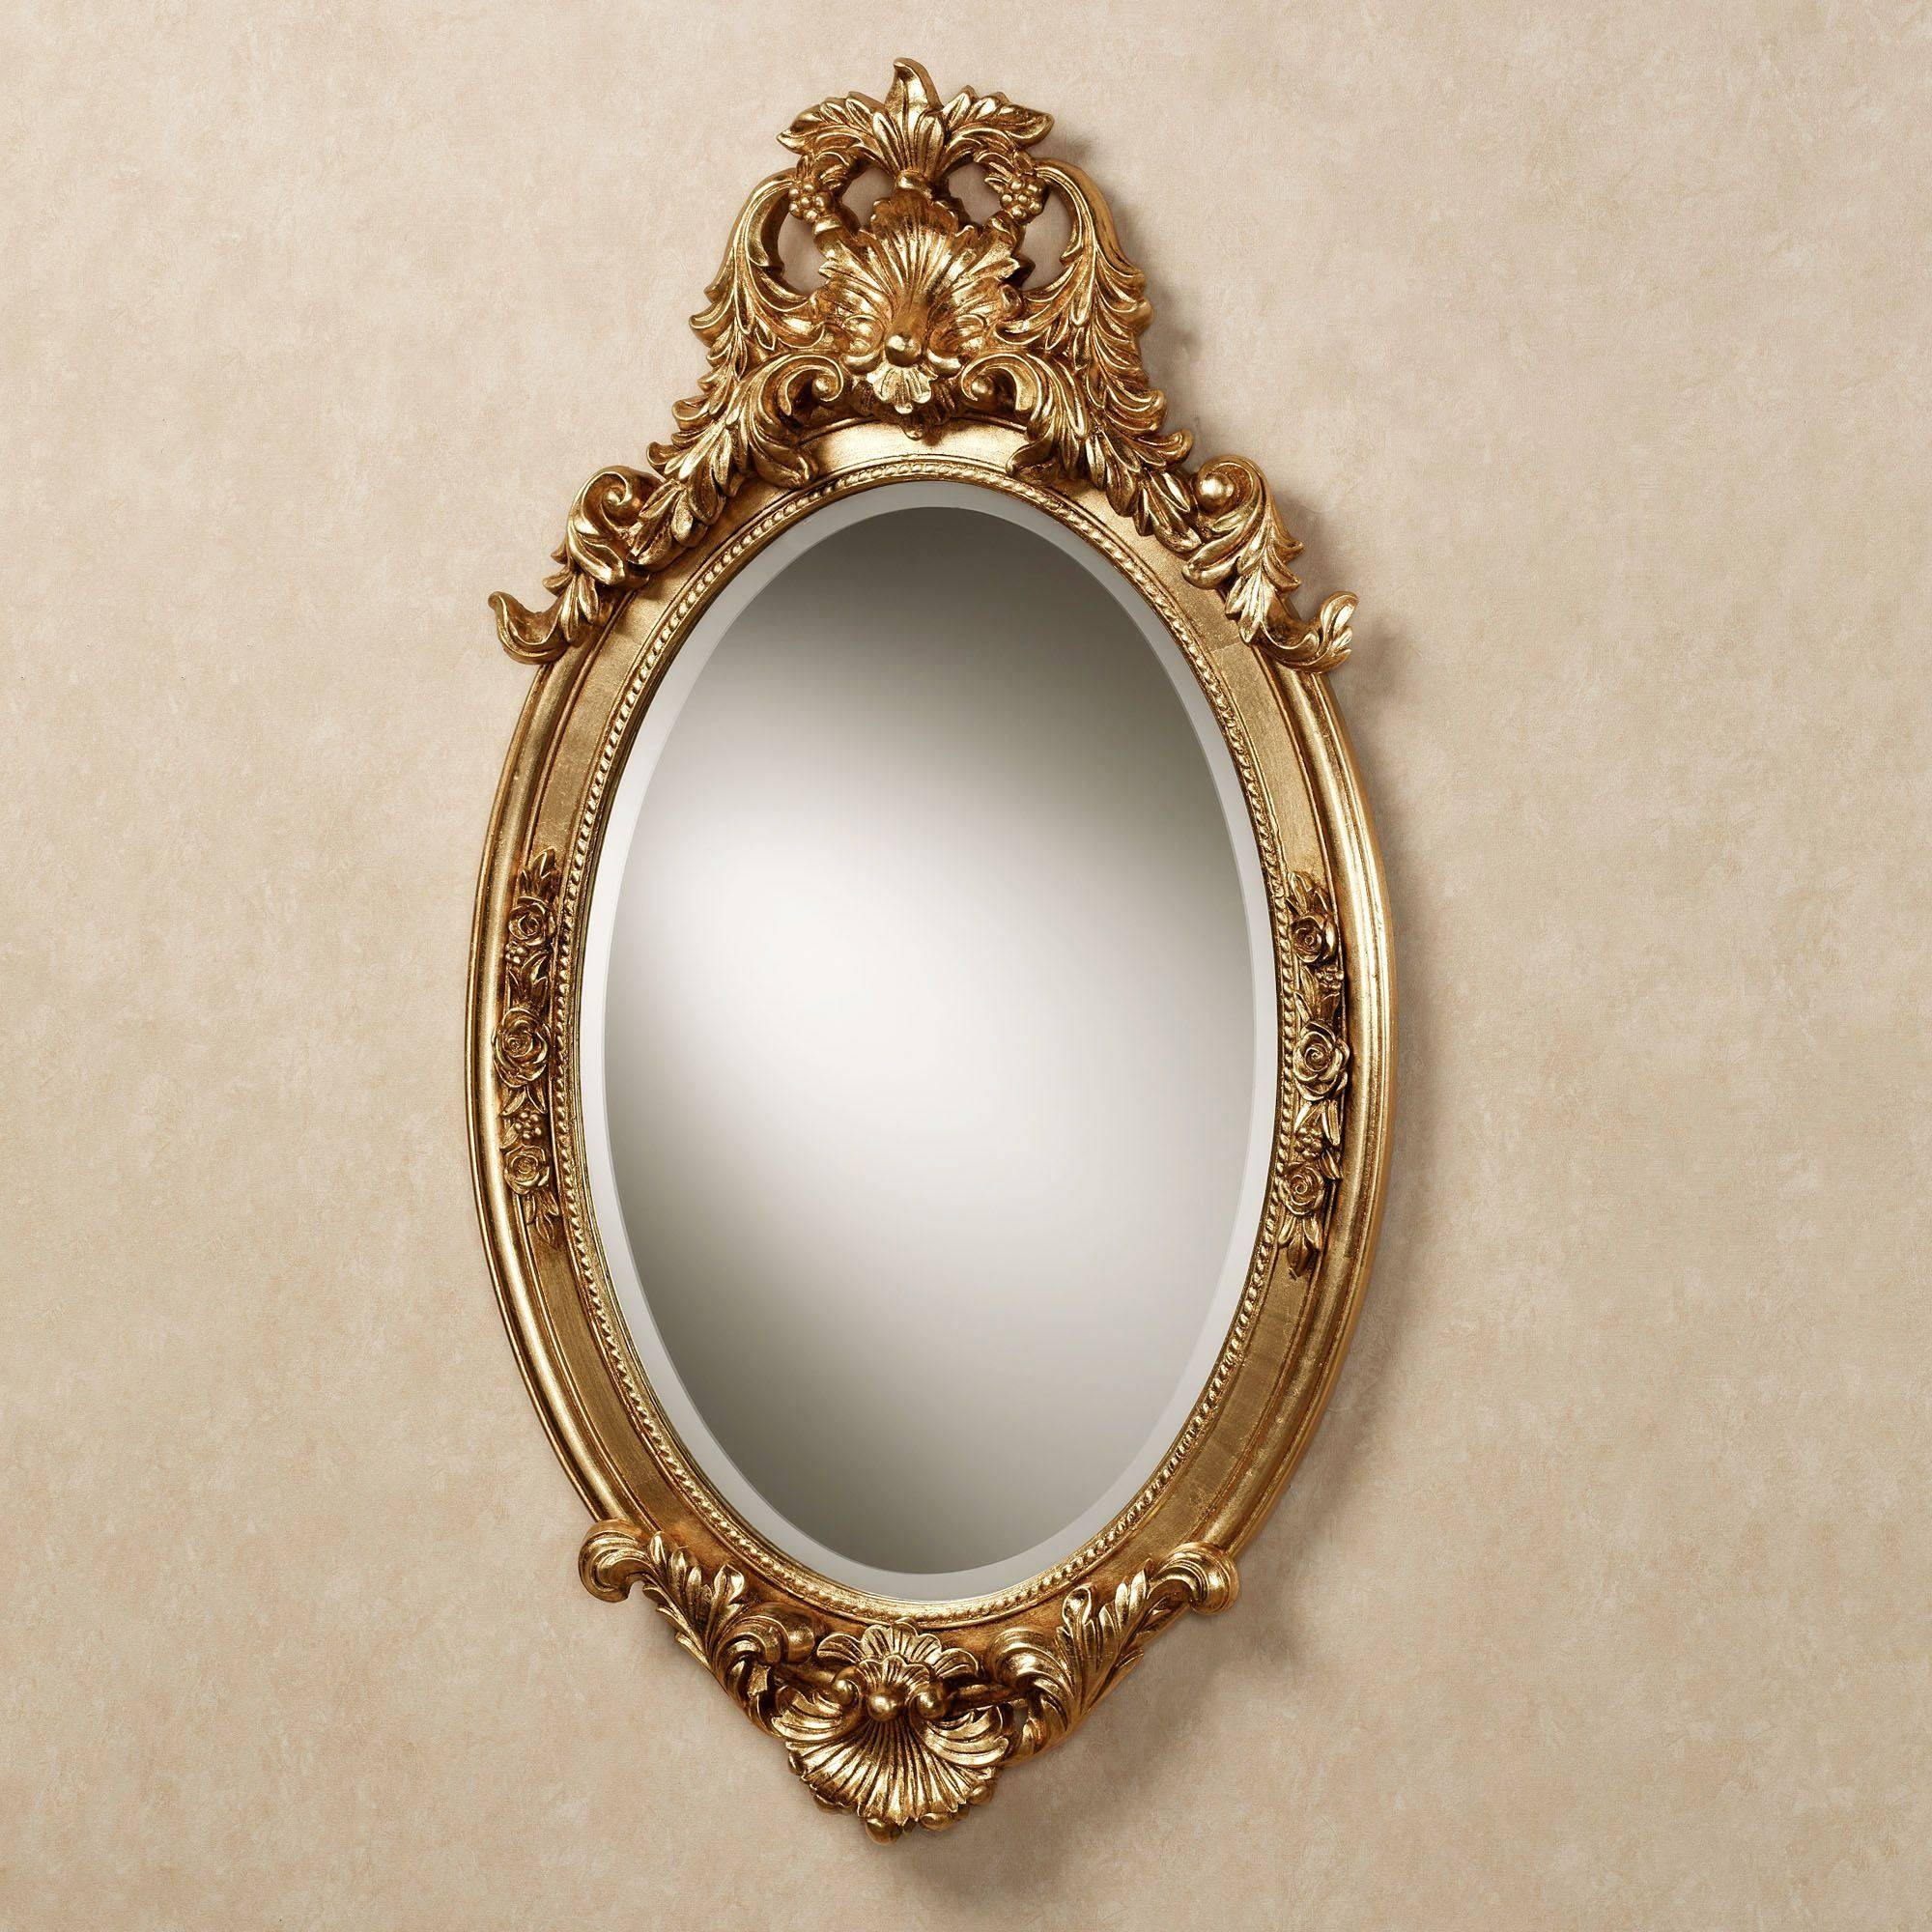 Hallandale Acanthus Leaf Oval Wall Mirror With Antique Gold Mirrors (View 19 of 25)